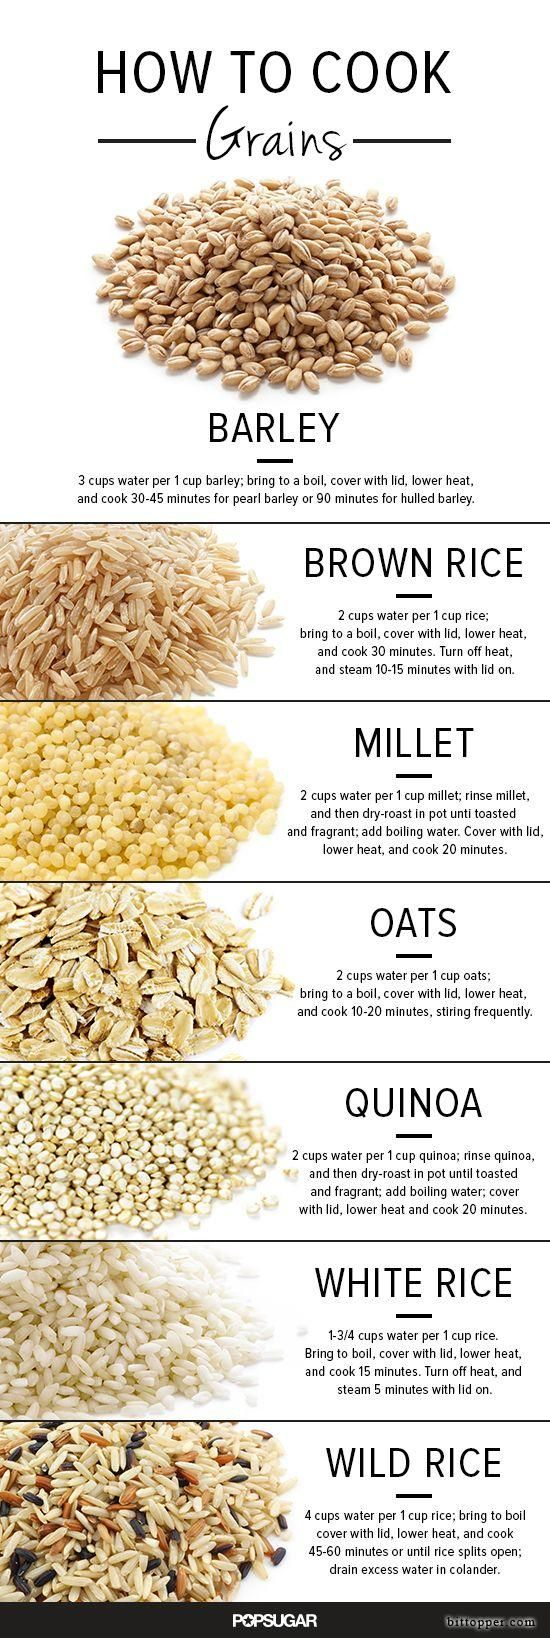 Guide to cooking grains. via bittopper.com